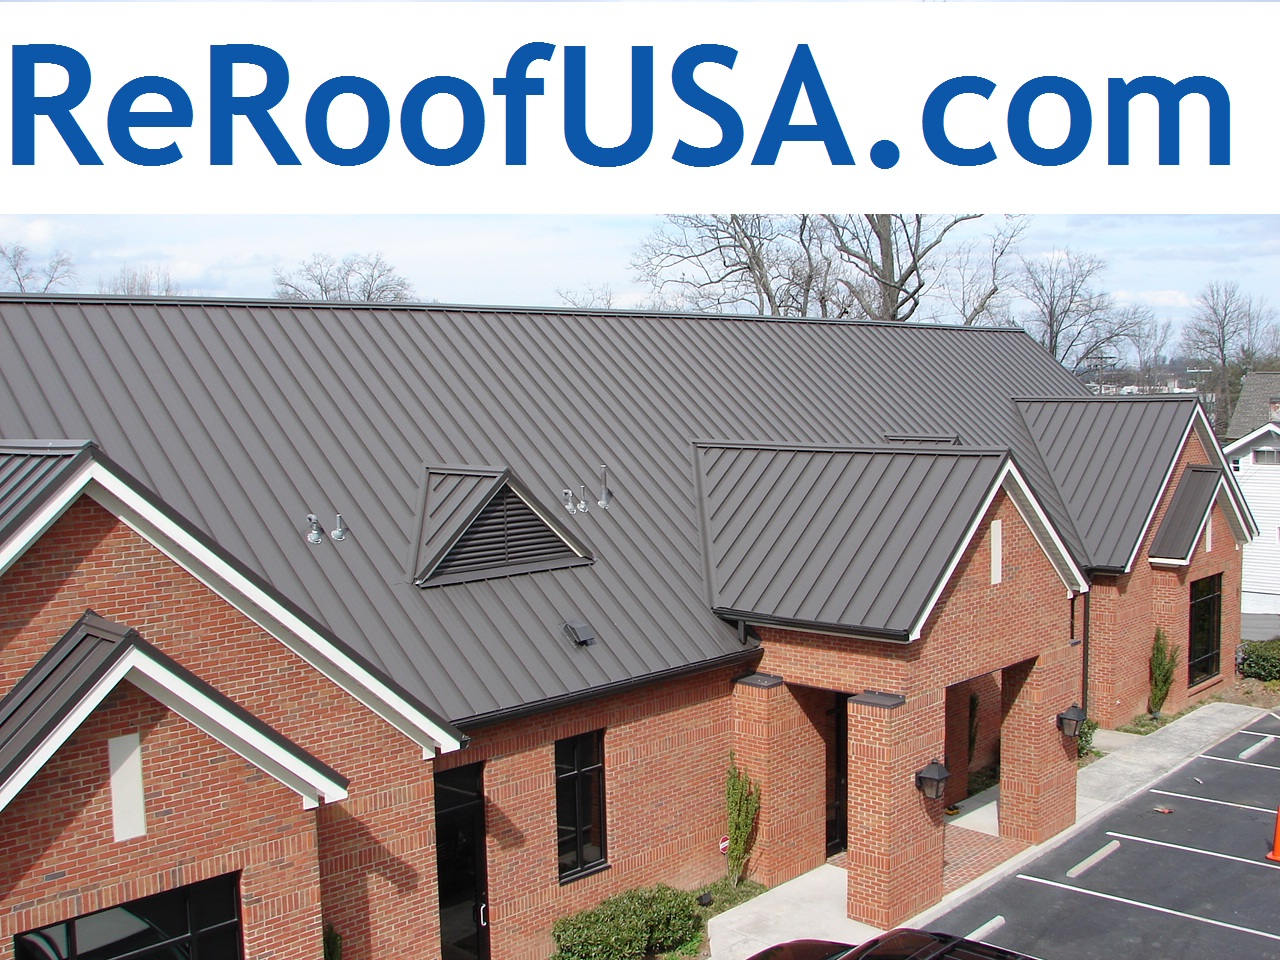 Metal Roofing Company In Oklahoma City Oklahoma Provides Fast Repair Or  Replacement With Onsite Panel Fabrication For Damaged Metal Roofs Hit By  Hail Storm, ...